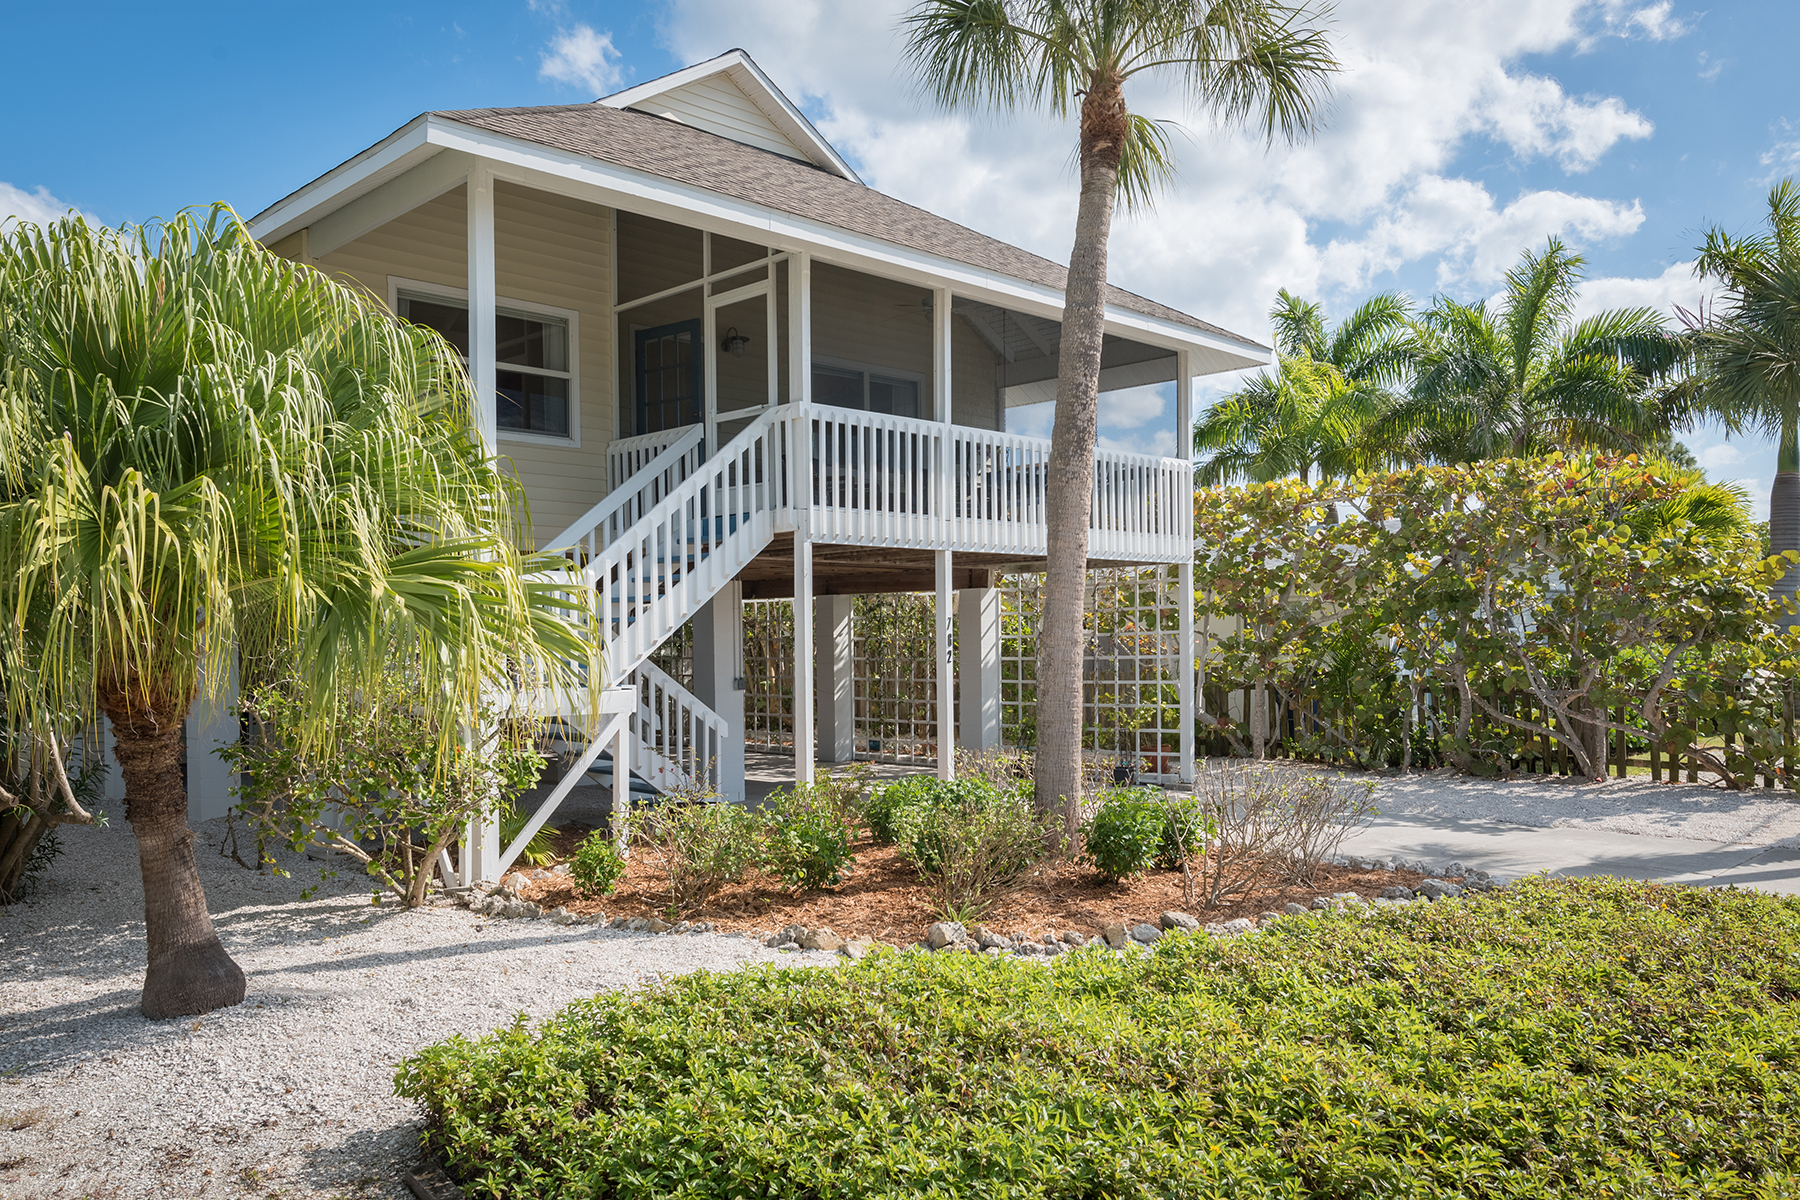 Single Family Homes for Sale at SHORE ACRES 762 Jacaranda Rd Anna Maria, Florida 34216 United States